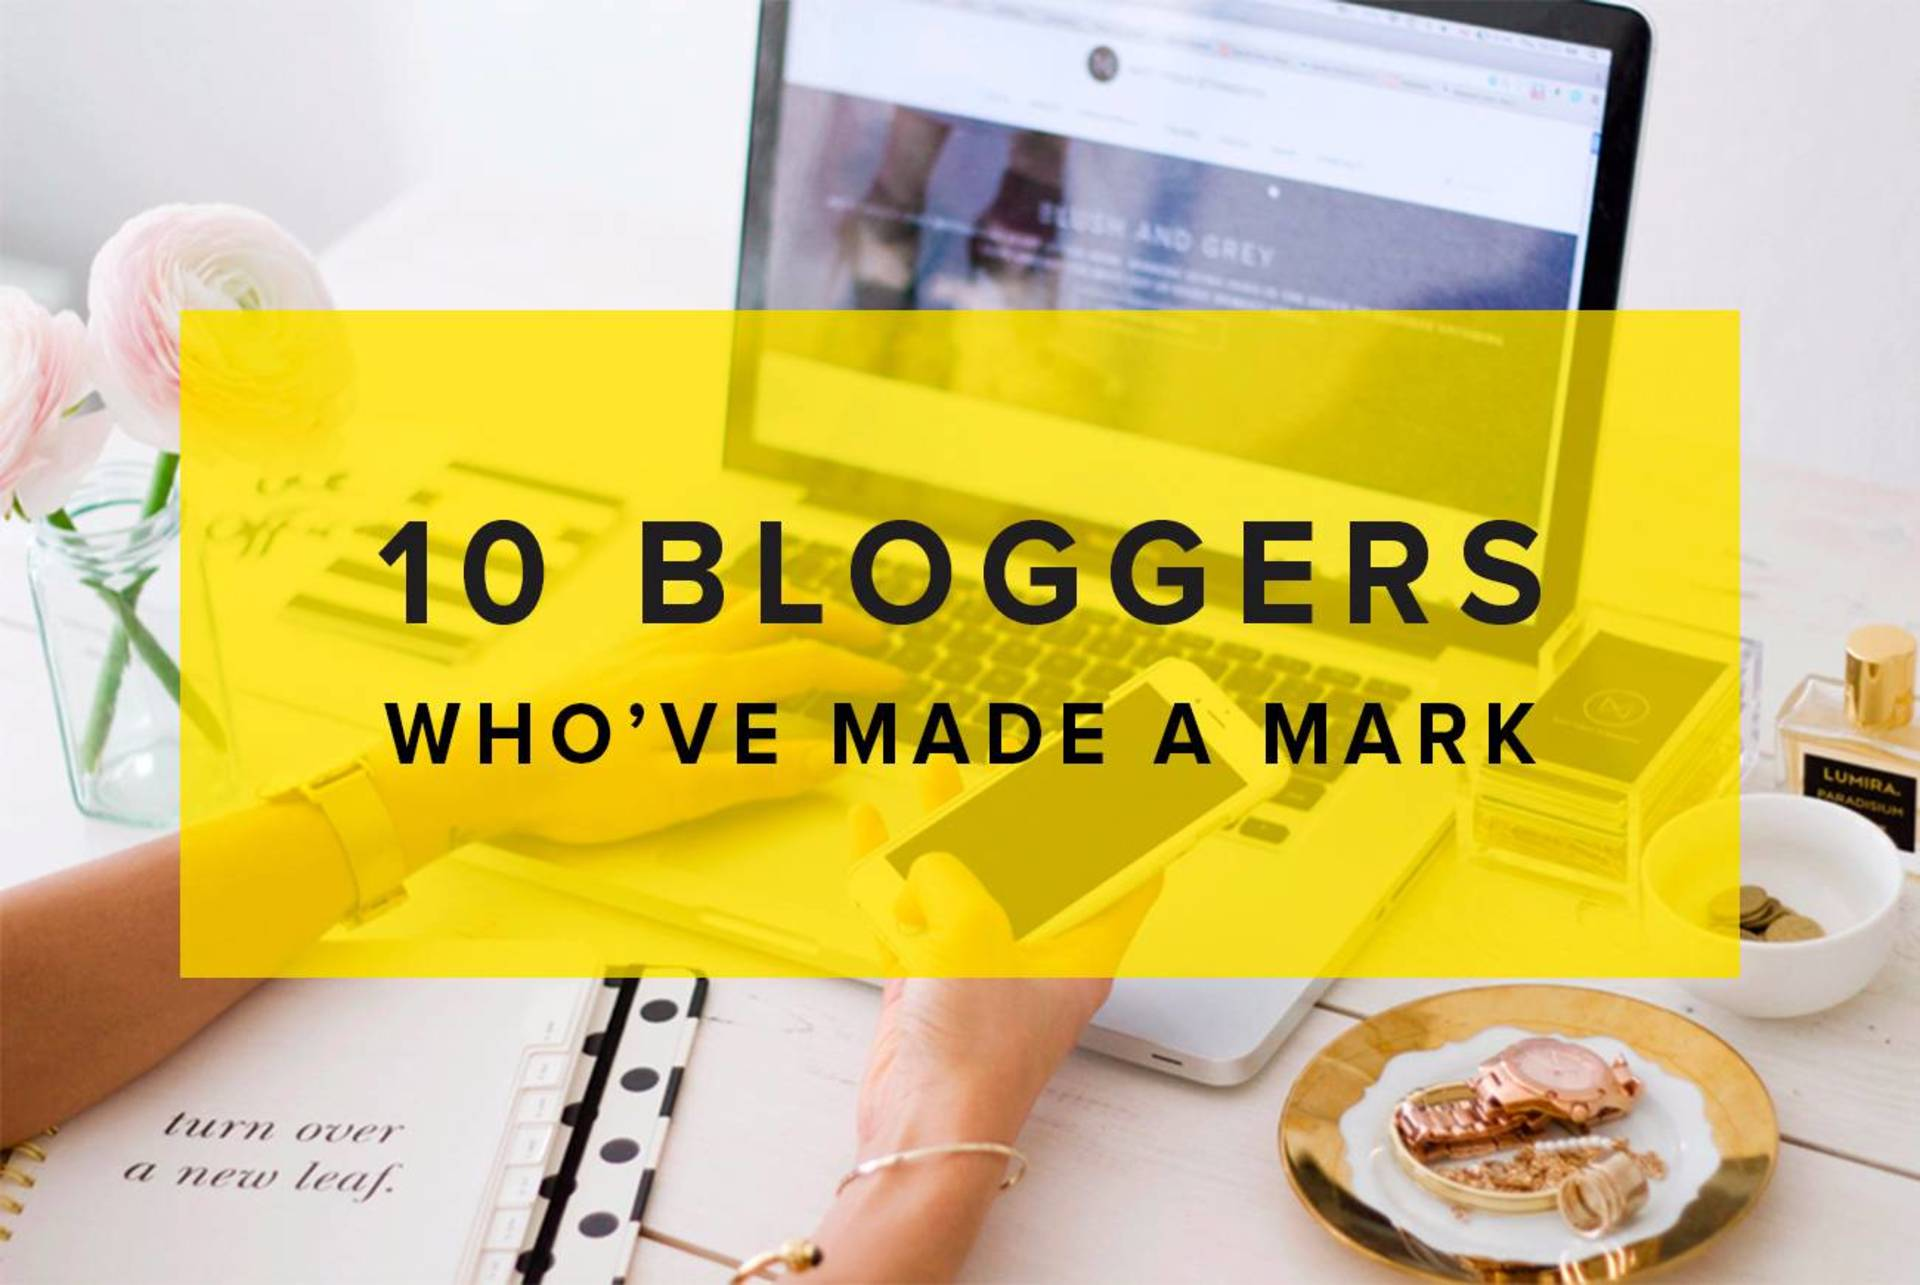 10 bloggers who have made a mark in blogging image